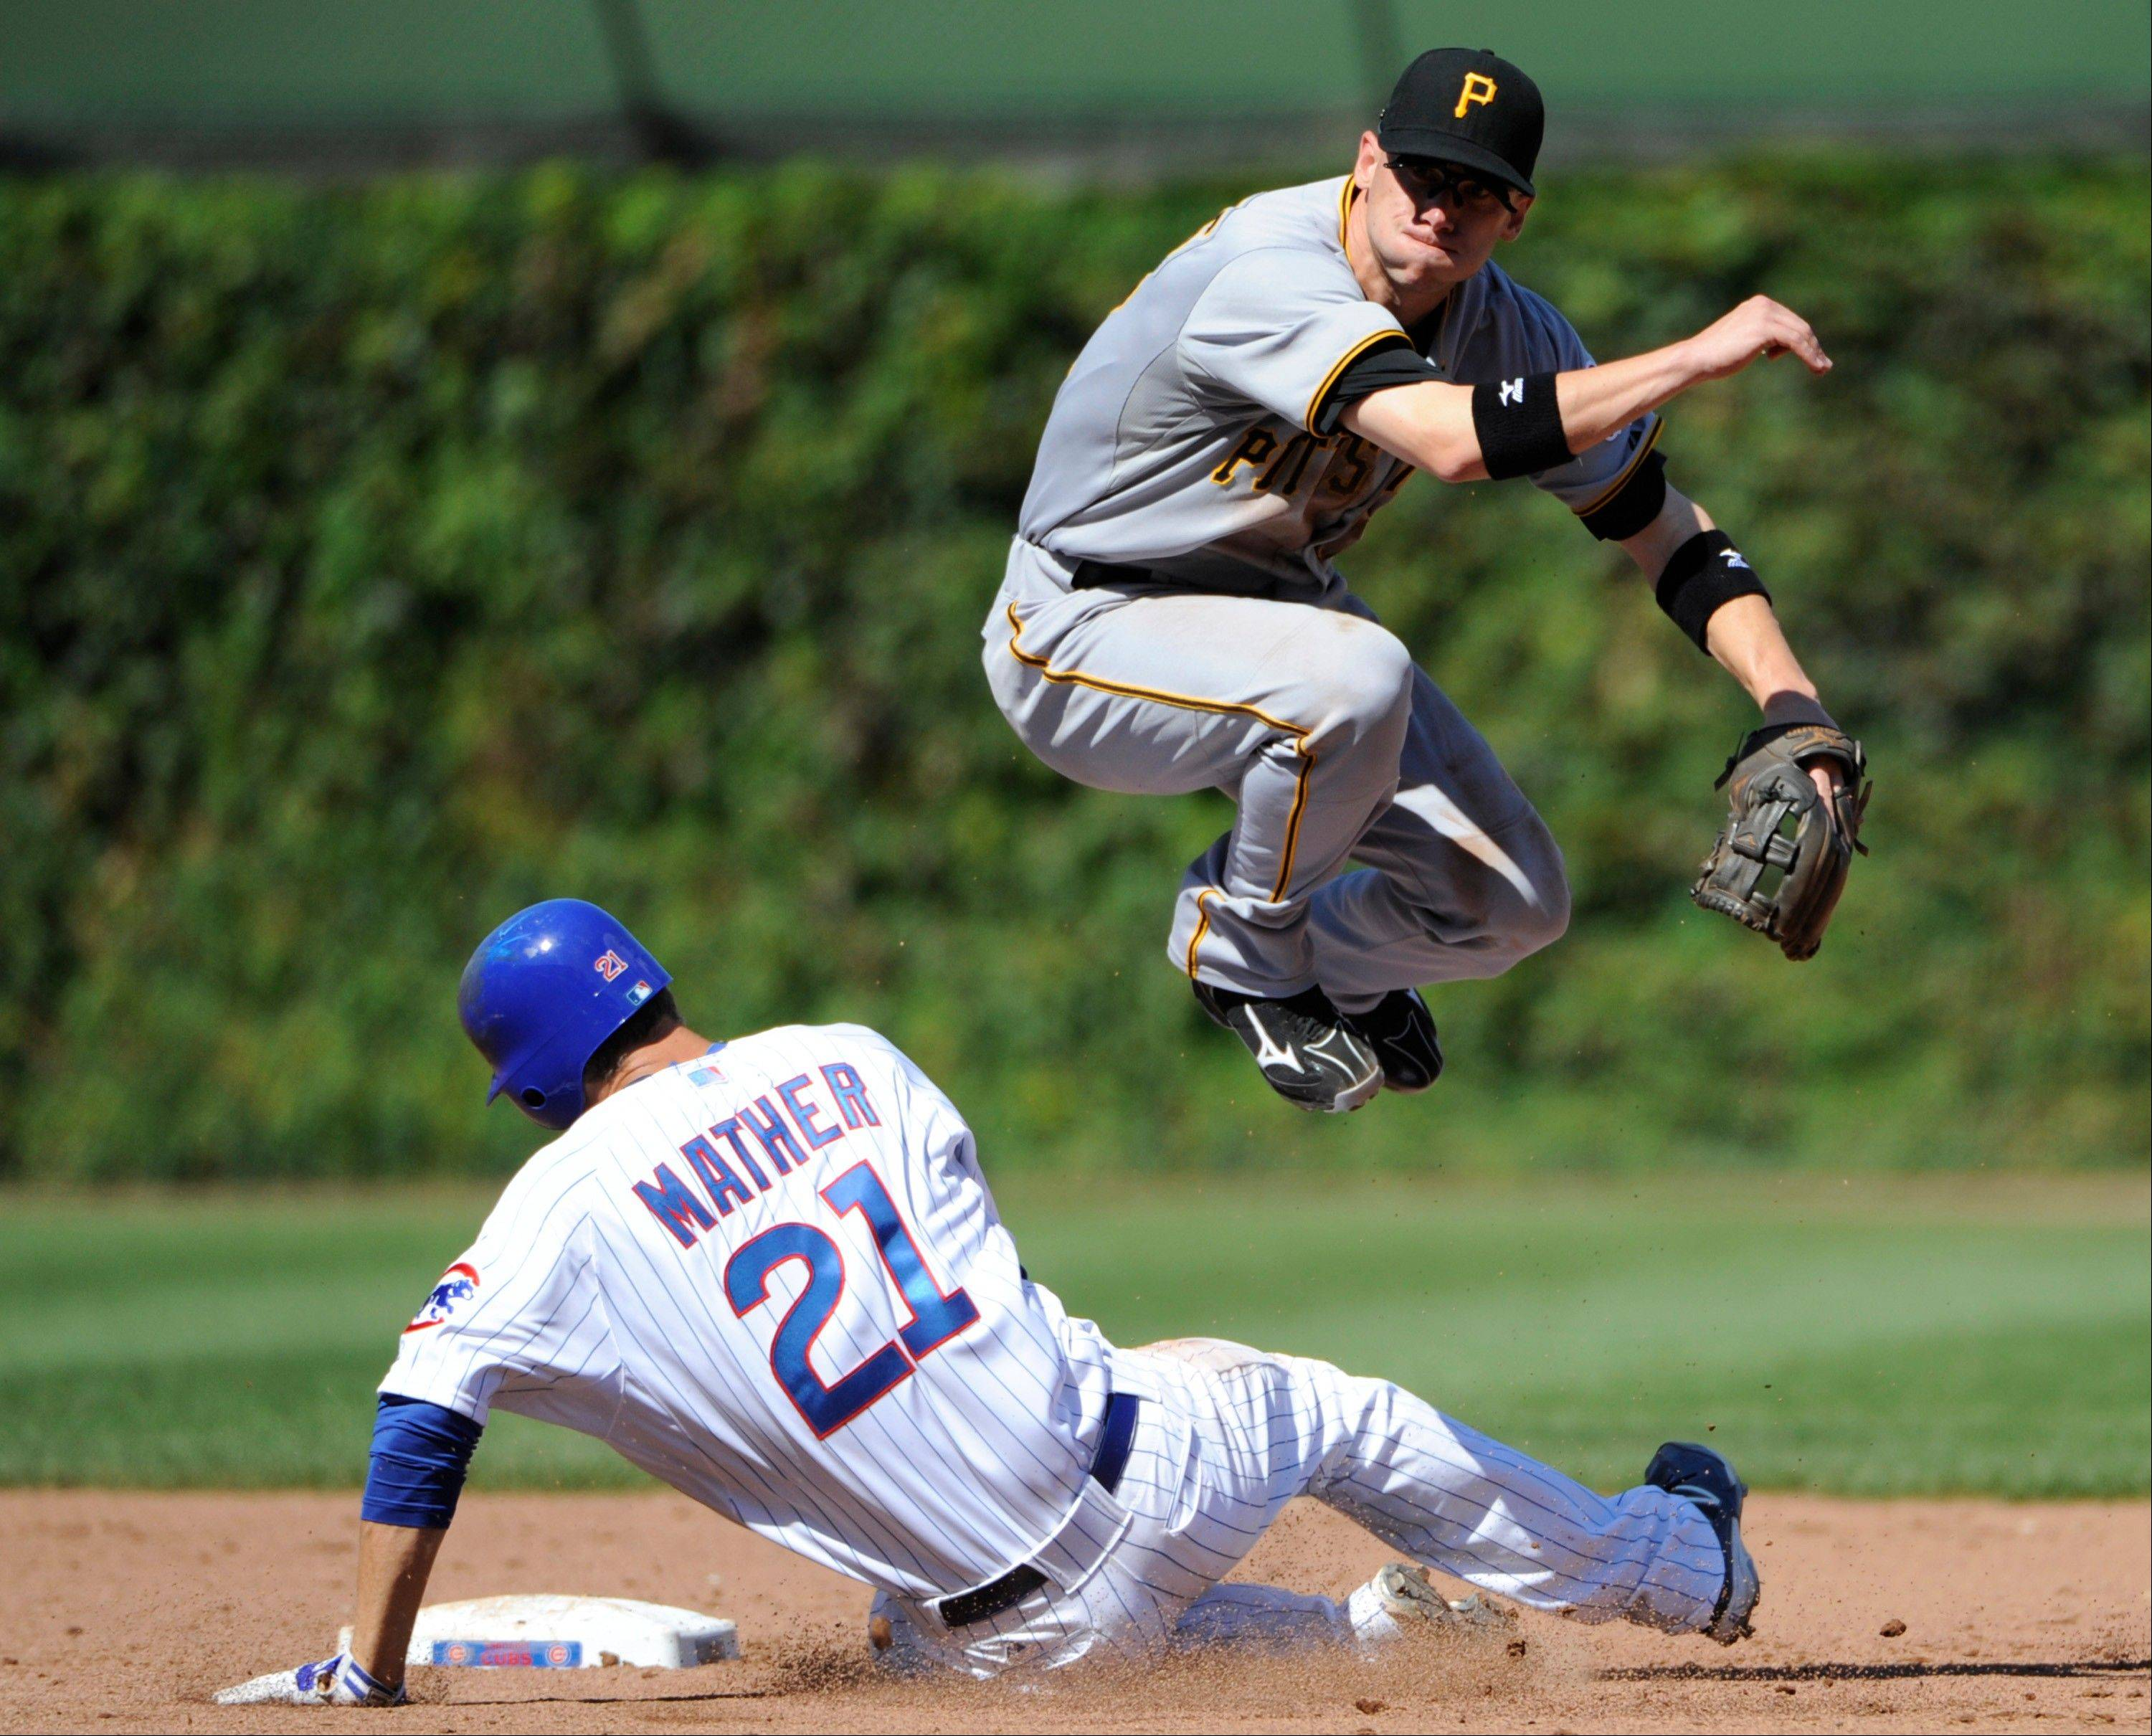 Pittsburgh Pirates shortstop Clint Barmes, top, forces out Chicago Cubs' Joe Mather left, at second base during the fifth inning of a baseball game, Saturday, Sept. 15, 2012 in Chicago. The Cubs' Darwin Barney was safe at first.